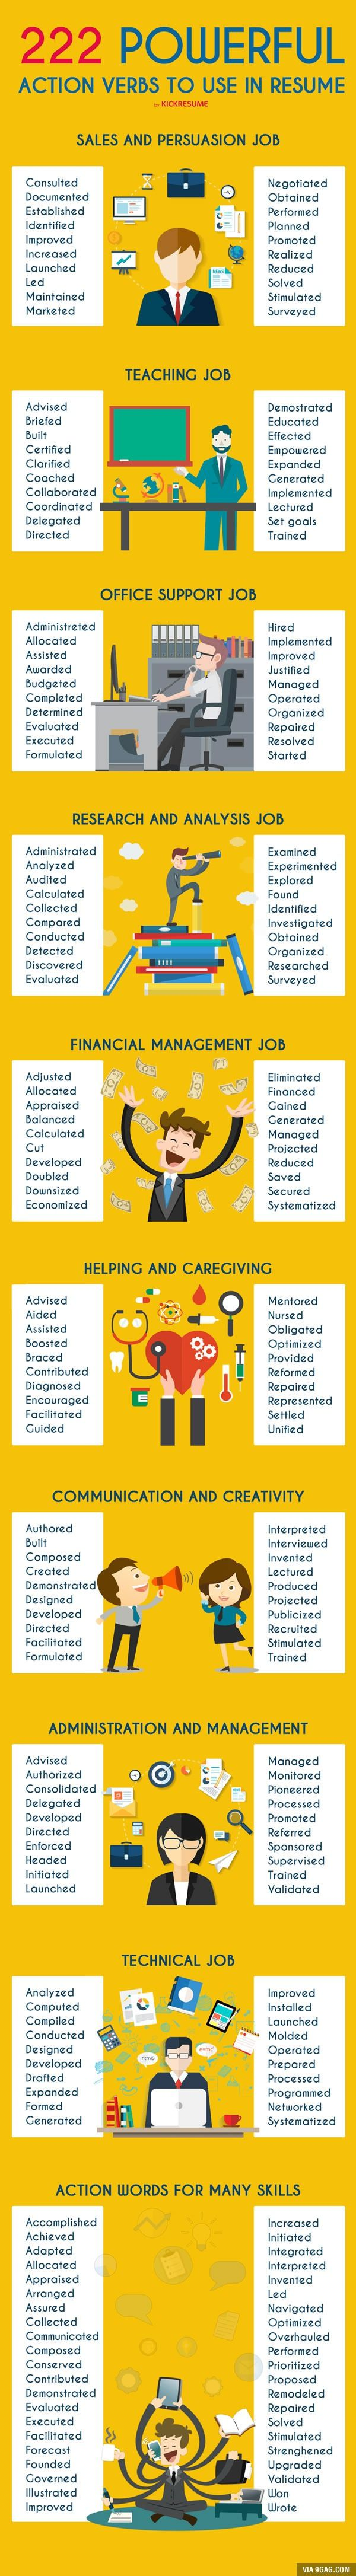 Resume Cheat Sheet 222 Action Verbs To Use In Your New Resume Fun